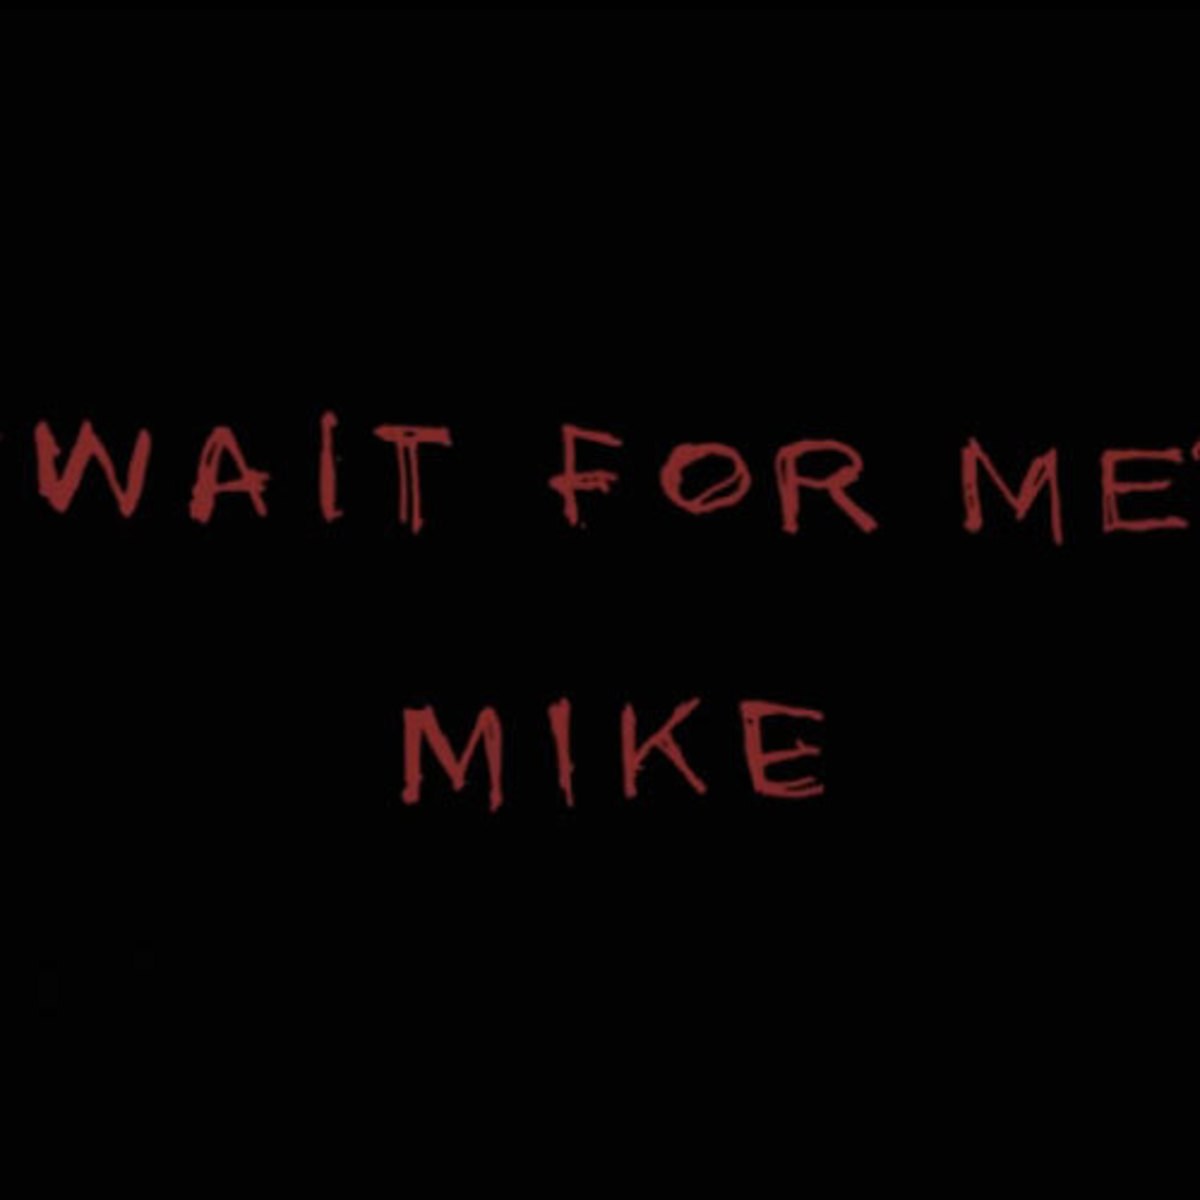 mike-wait-for-me.jpg